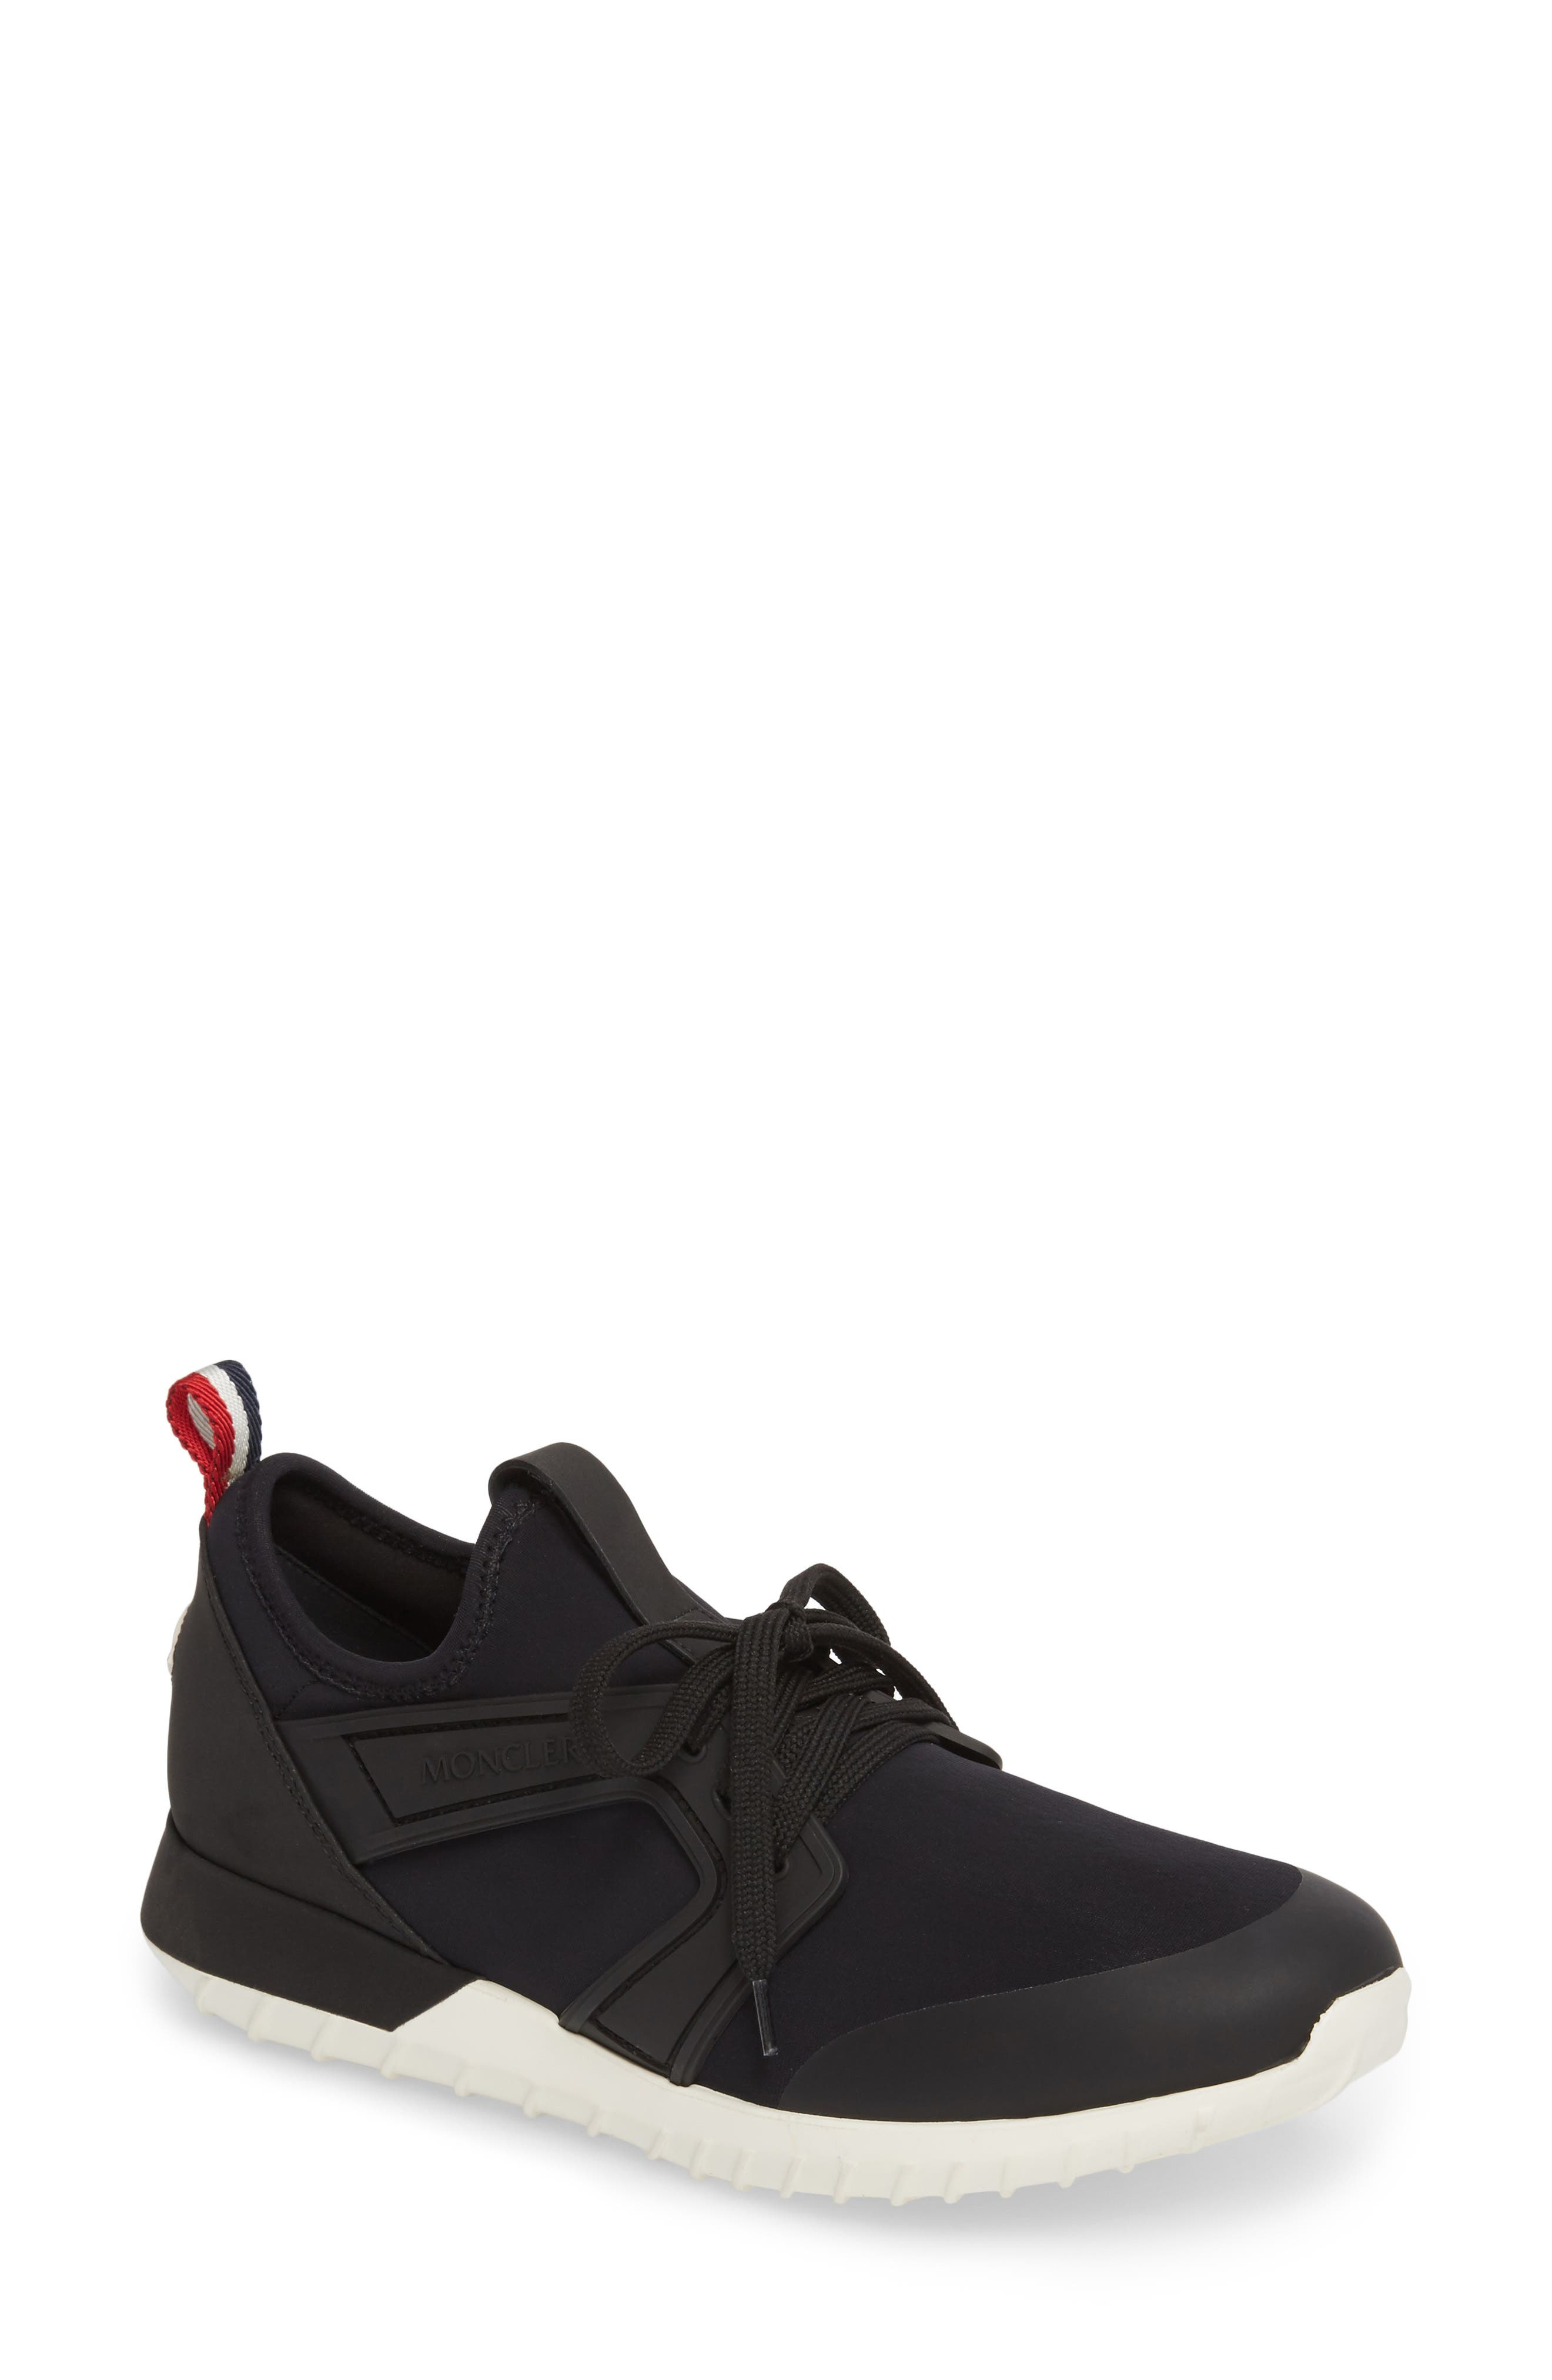 Meline Lace-Up Sneaker,                             Main thumbnail 1, color,                             Black